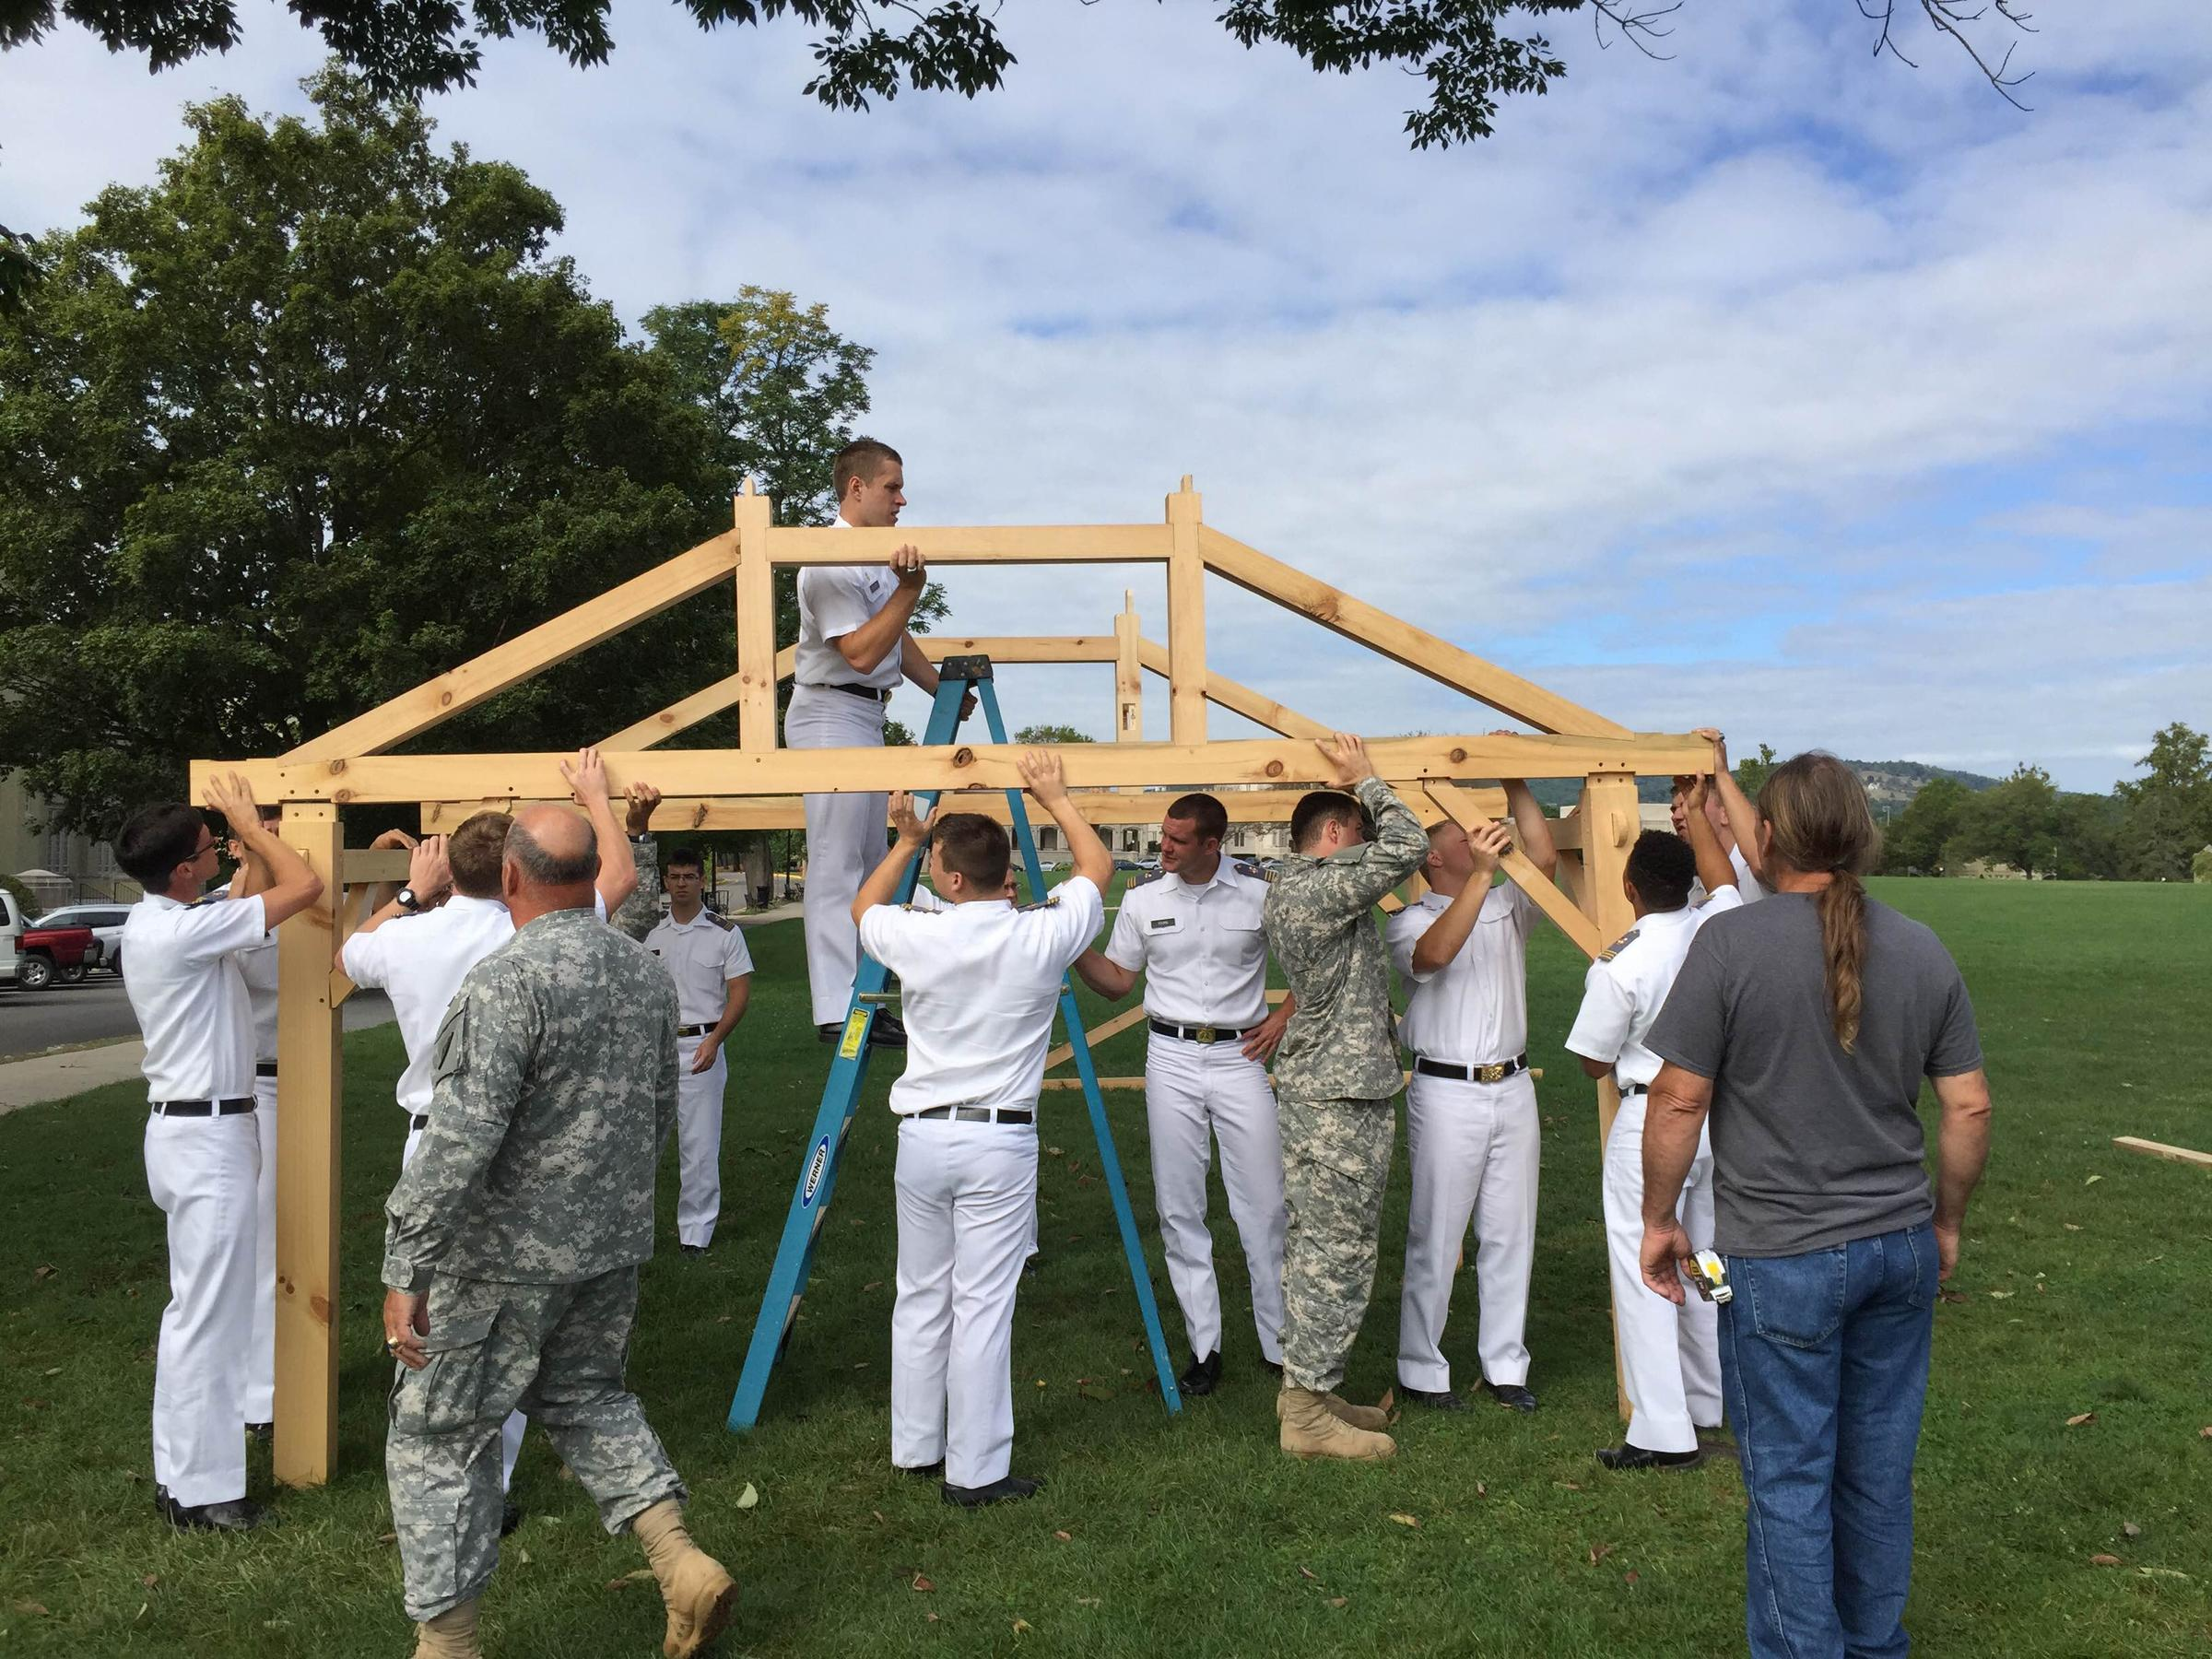 VMI Engineering Teacher Takes Students Back to Timber Framing | WMRA ...